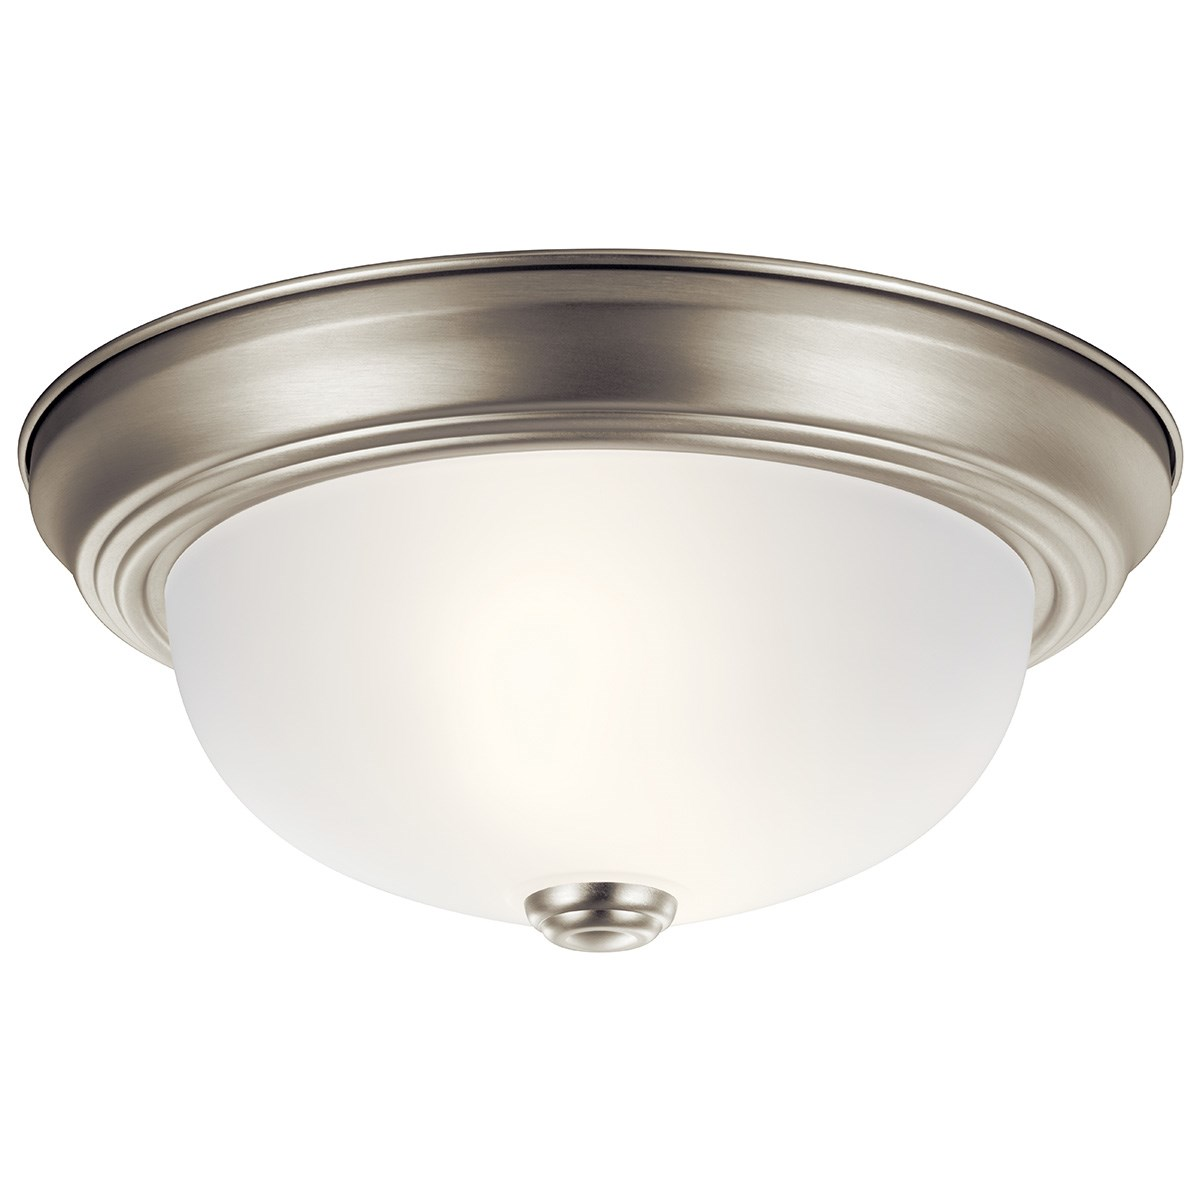 "11.25"" 2 Light Flush Mount Brushed Nickel"